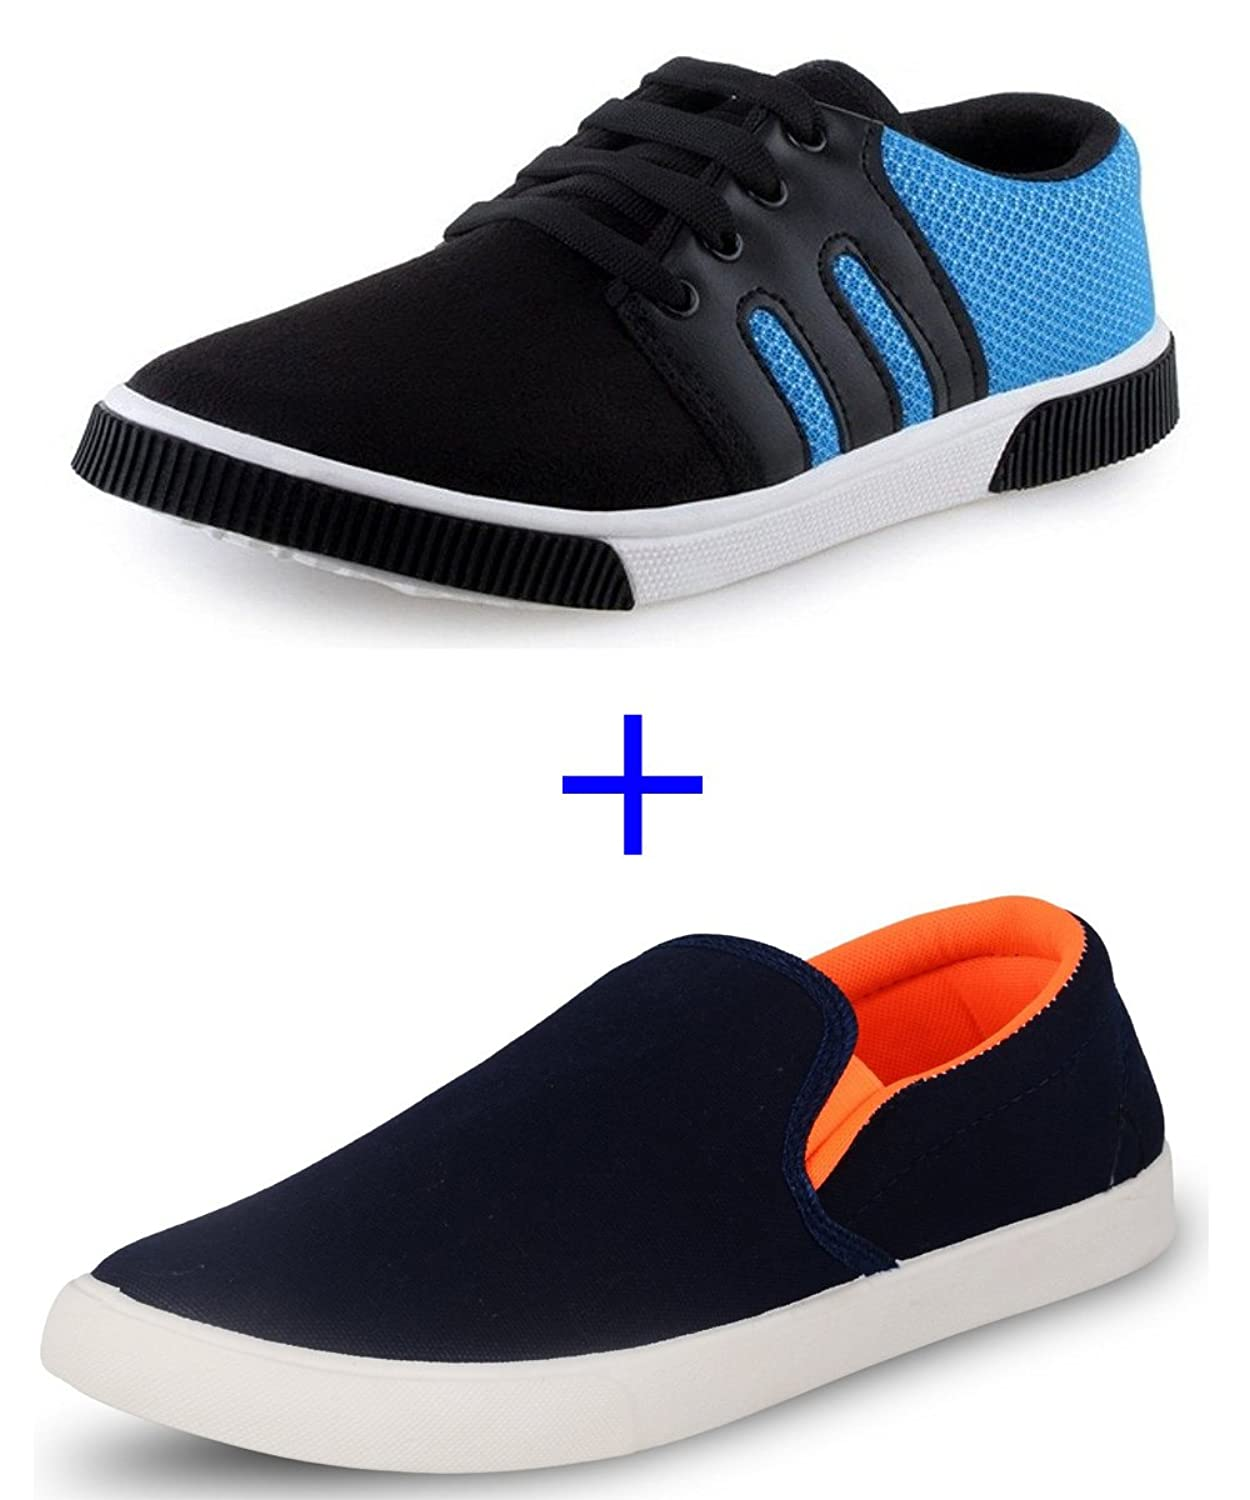 SCATCHITE Combo Casual Sneakers Loafers(pack of 2) at Rs 499